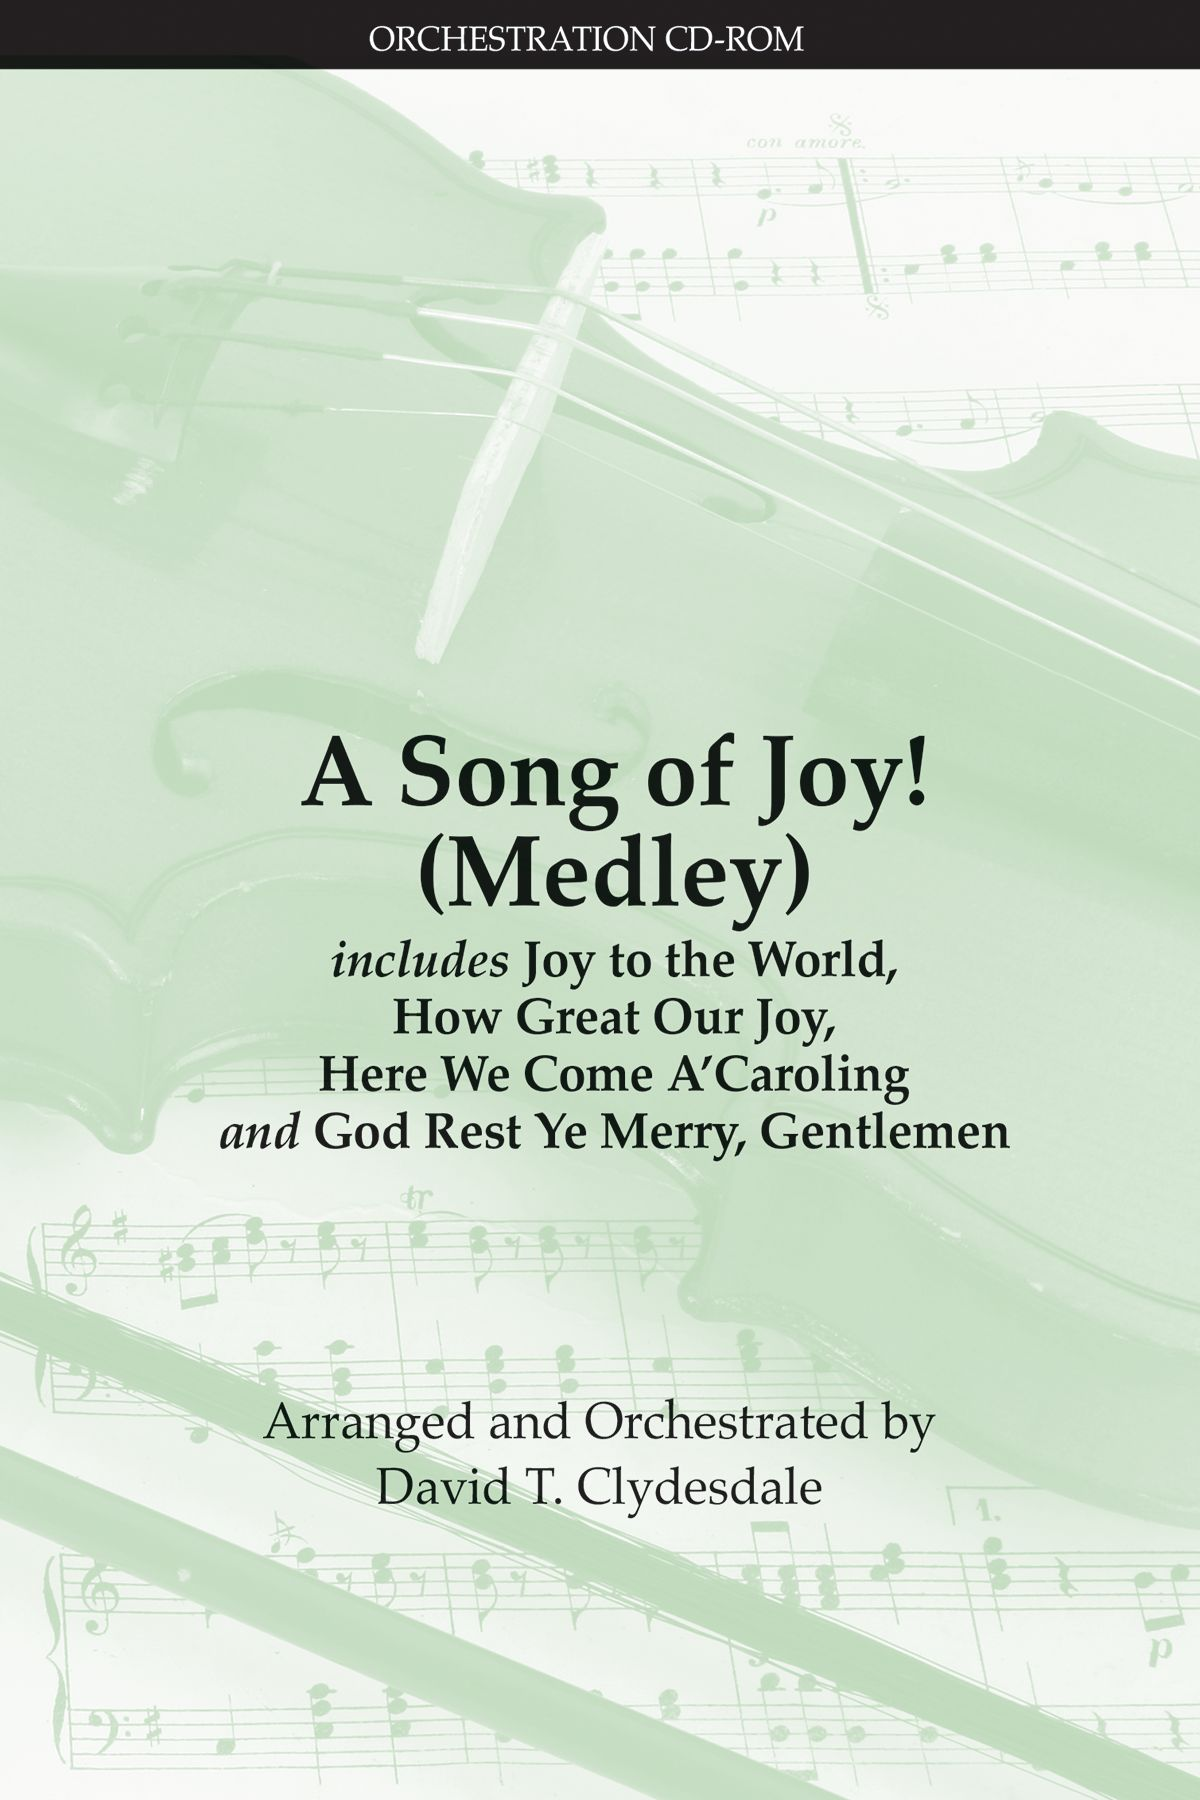 A Song of Joy! (Medley)